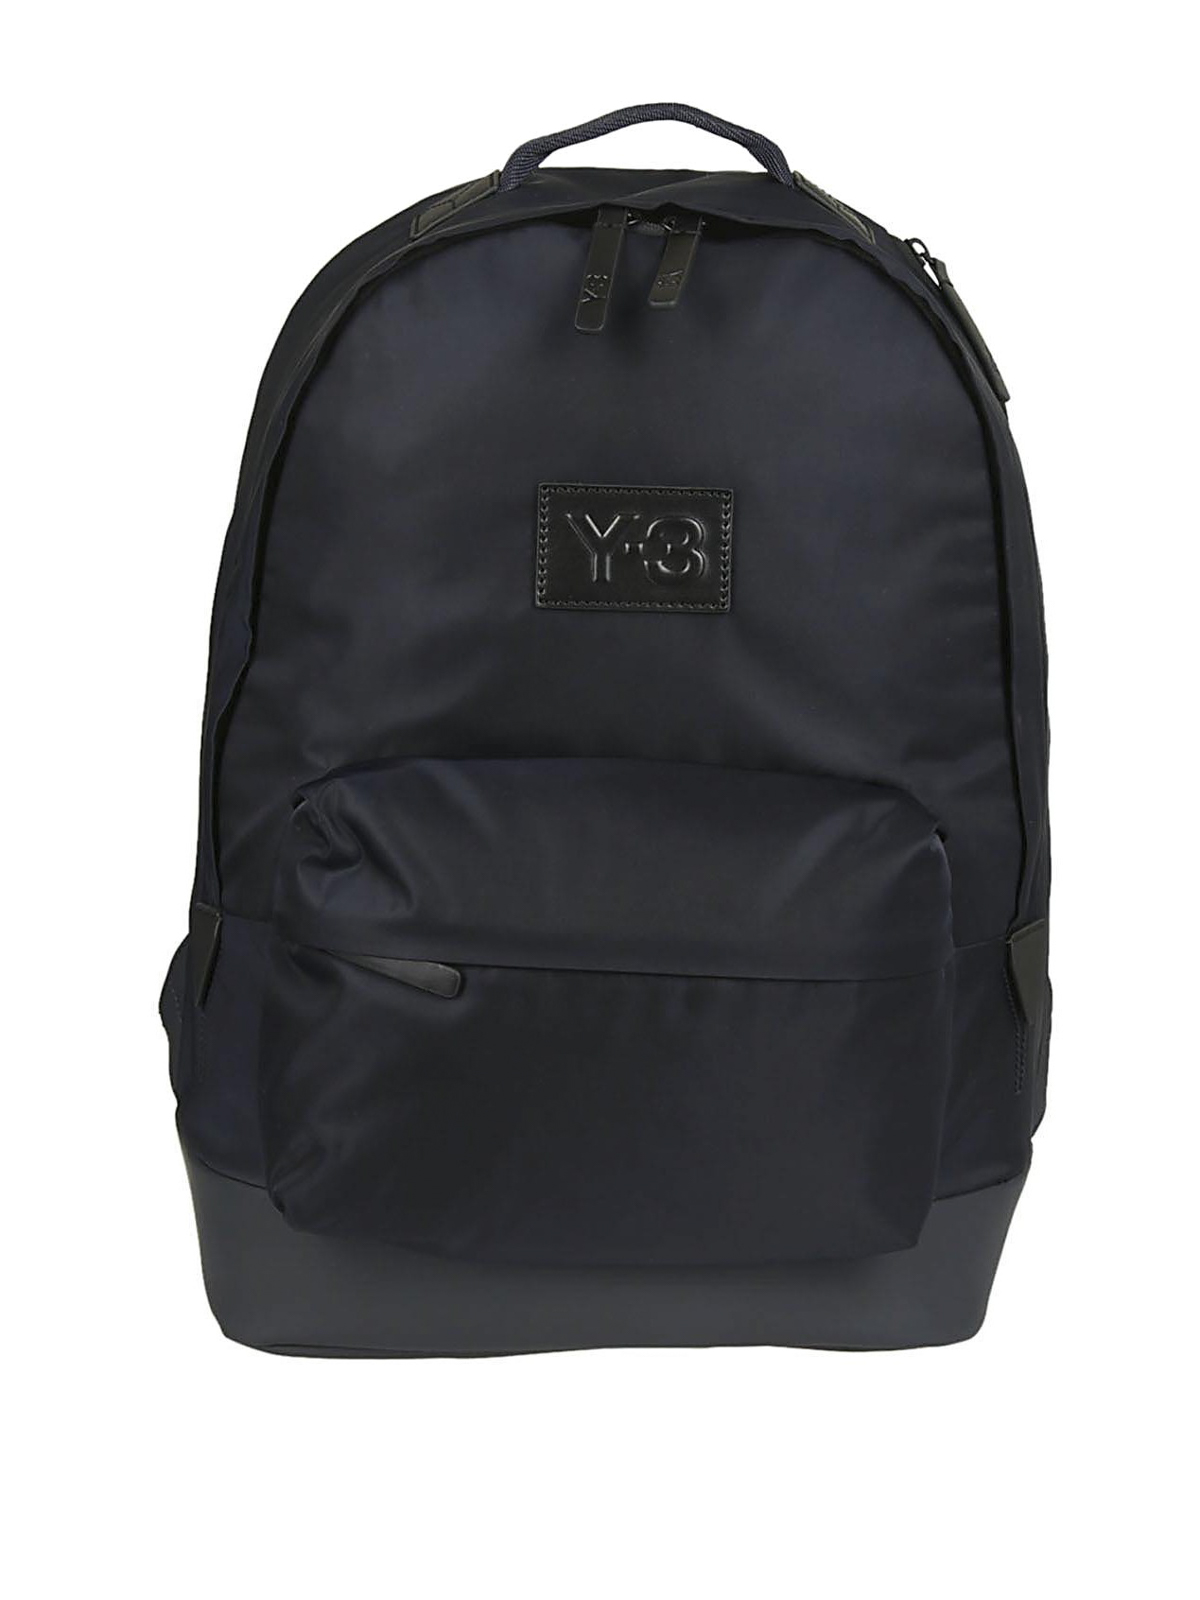 c5bb2c4035c8 Adidas Y-3 - Techlite blue backpack - backpacks - CY3522